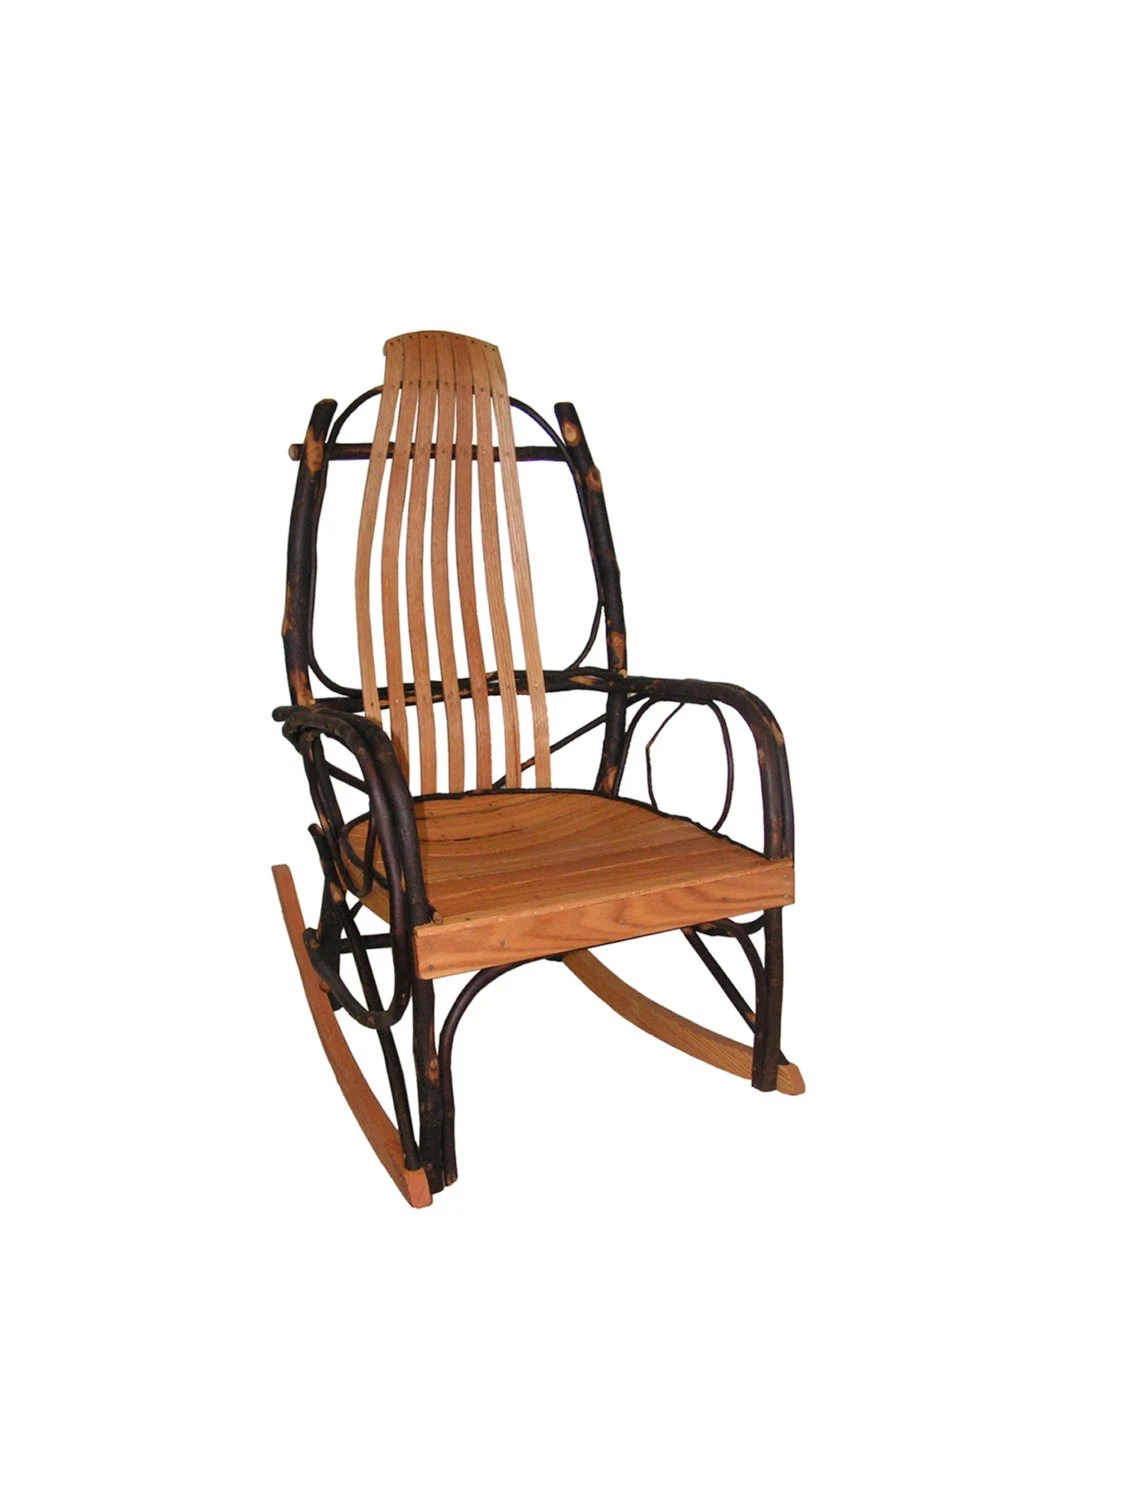 bent wood rocking chair antique style dining table and chairs hickory oak amish bentwood